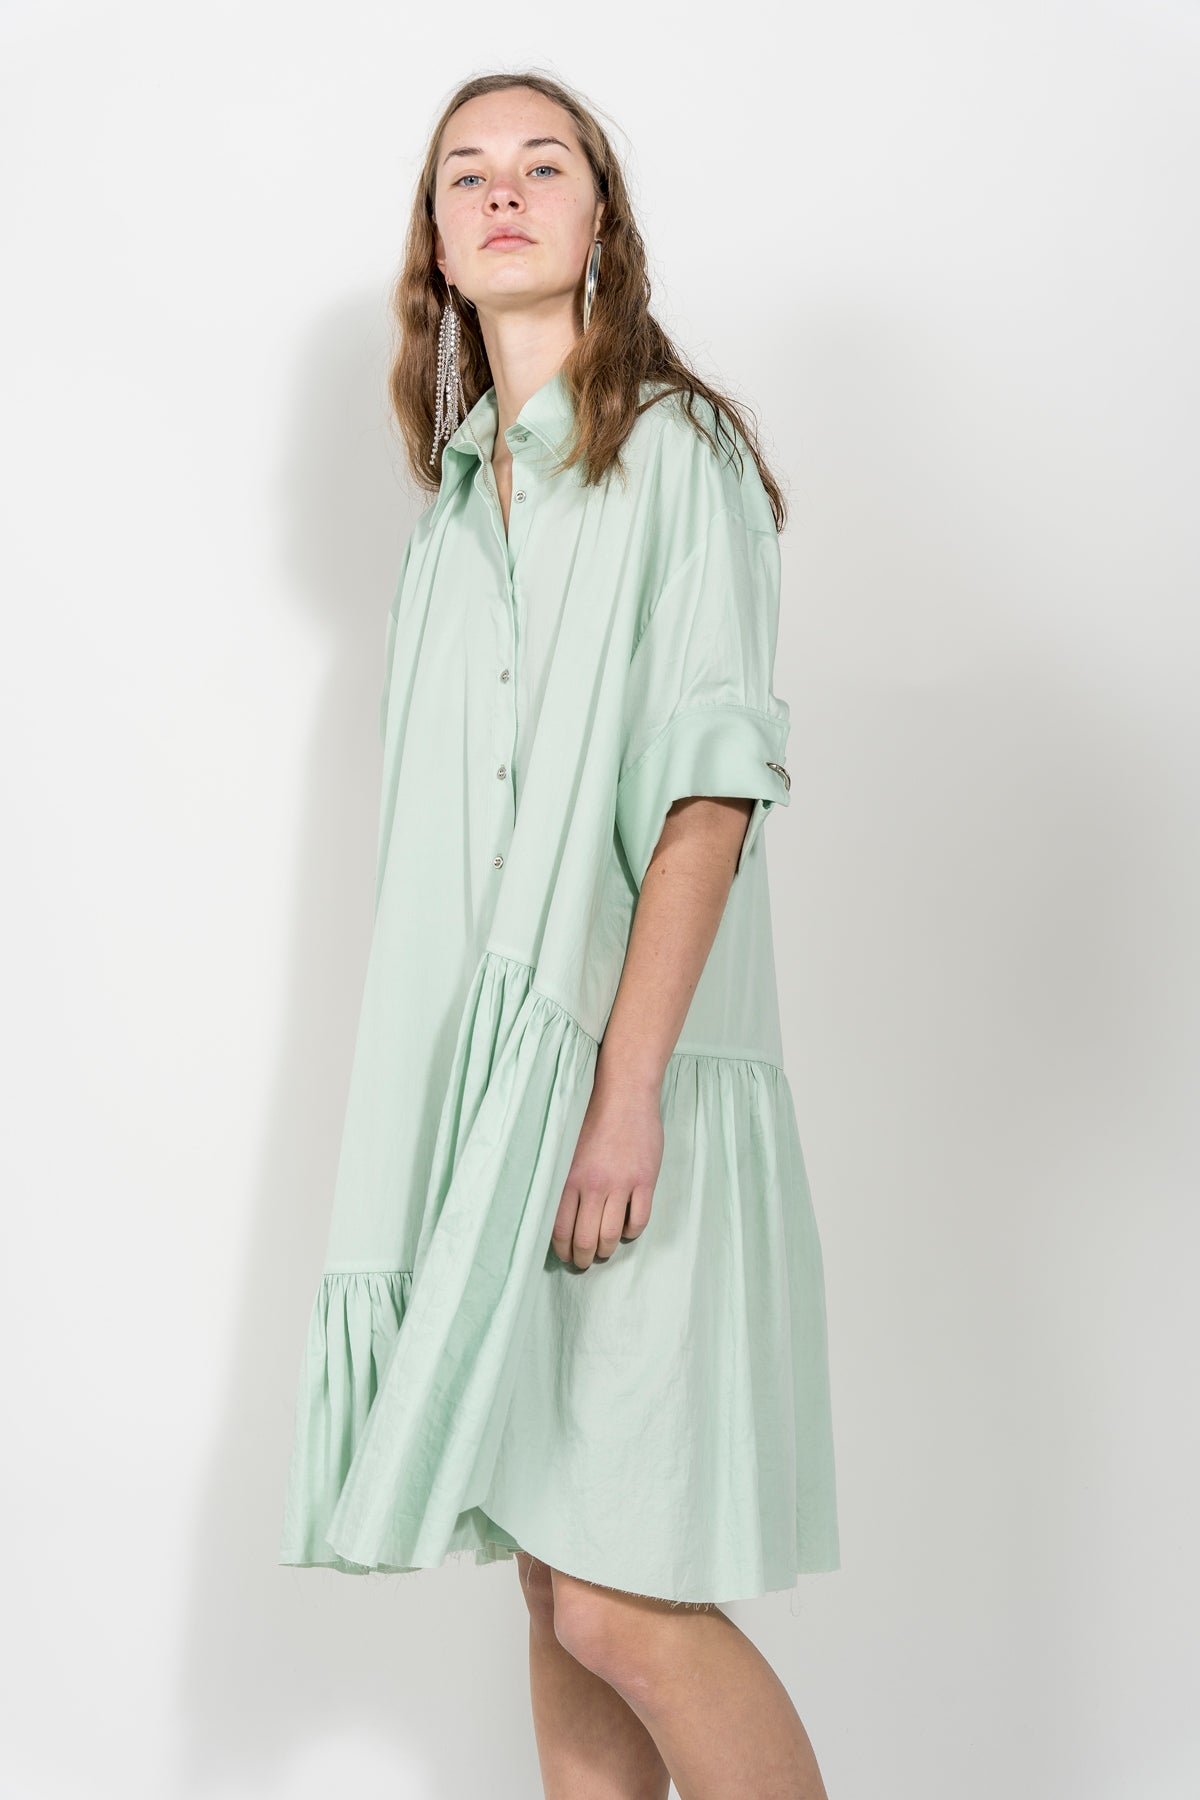 XXL SHORT SLEEVE SHIRT DRESS IN BABY GREEN marques almeida